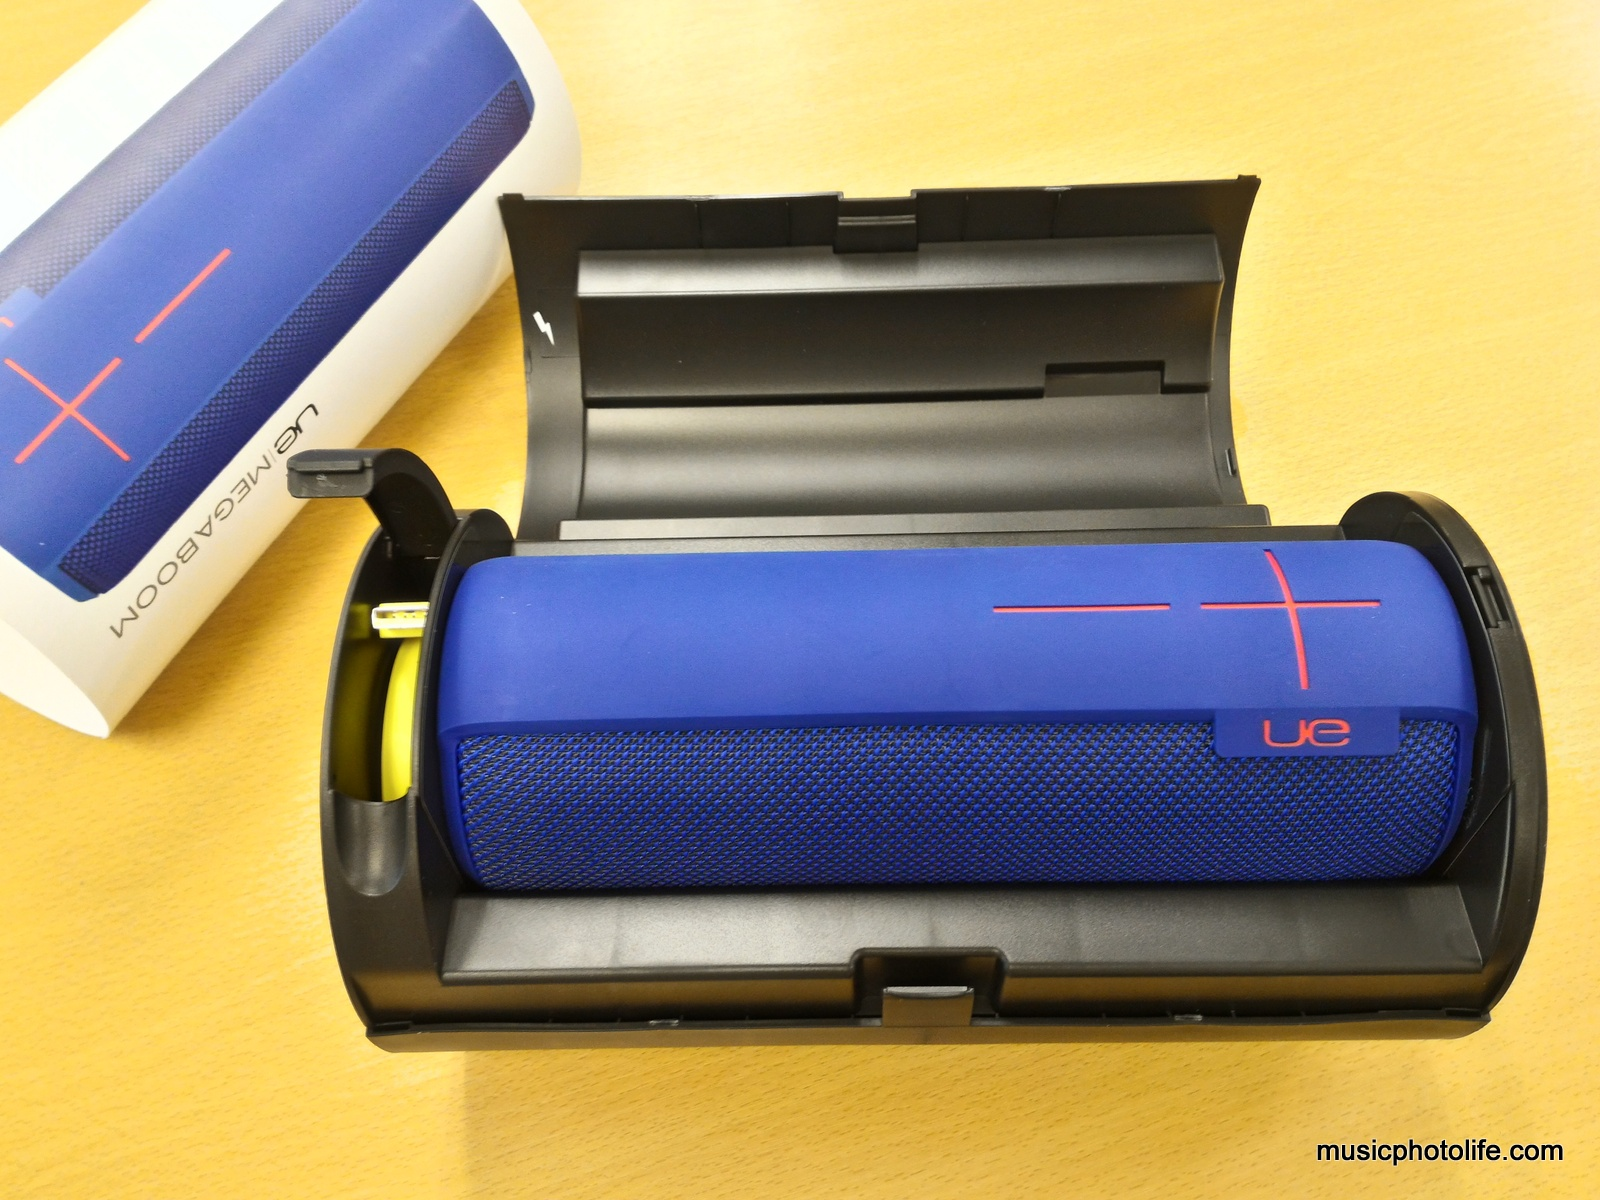 Ue megaboom waterproof wireless speaker review for Housse ue megaboom